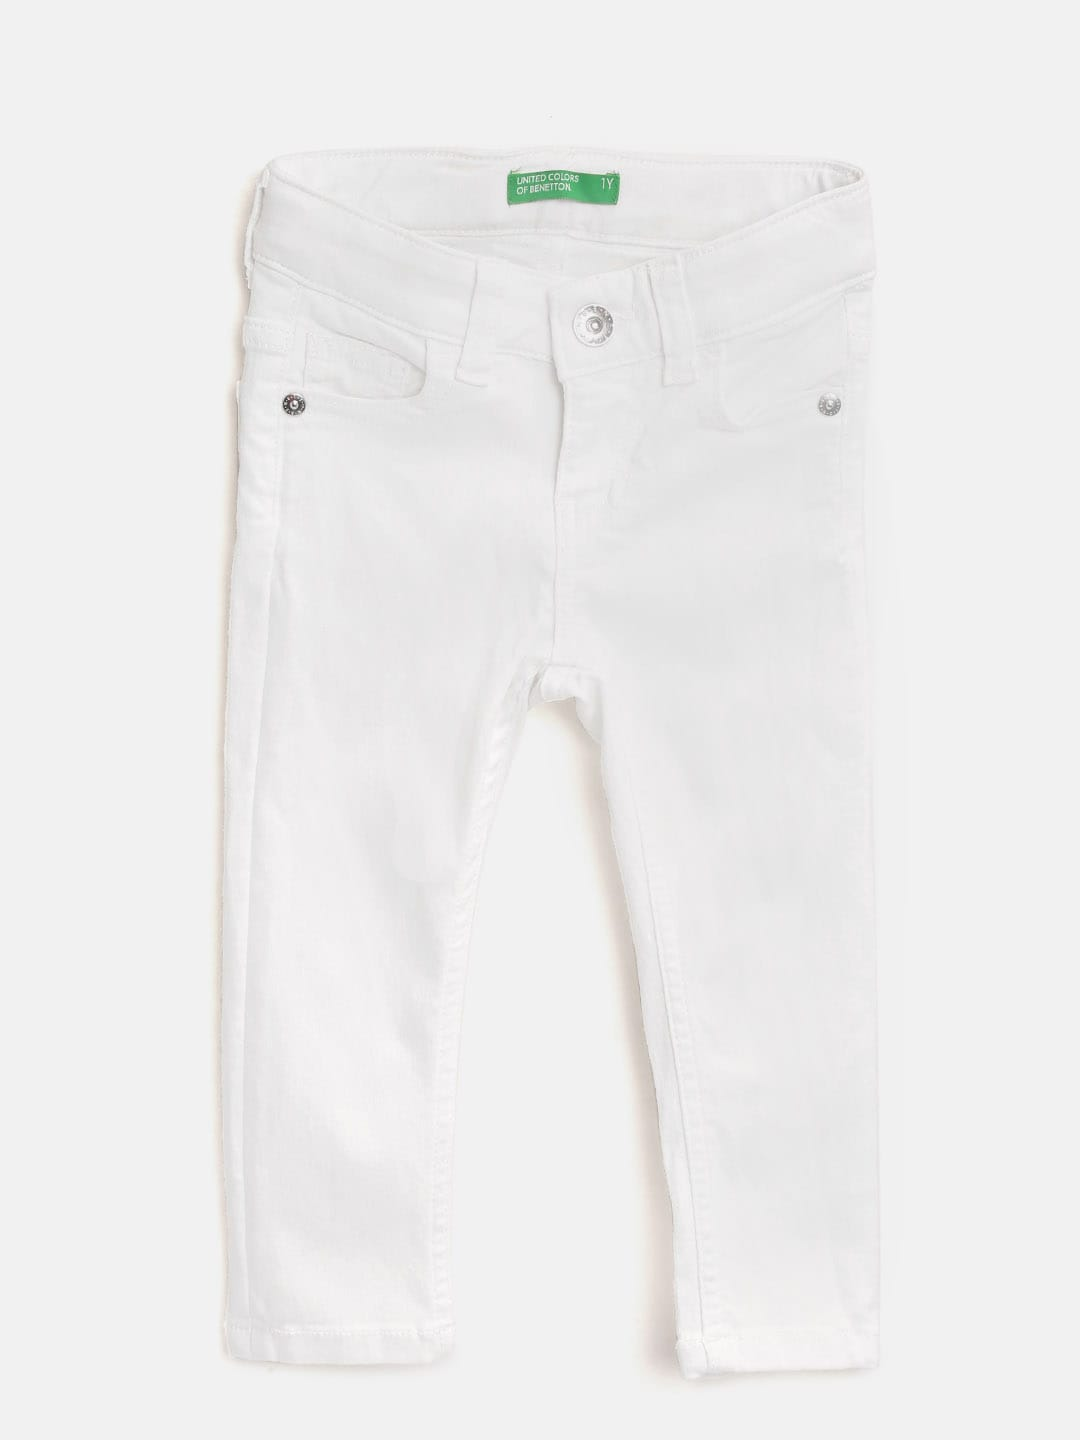 80da24d59 UCB - Shop for United Colors of Benetton Online in India | Myntra